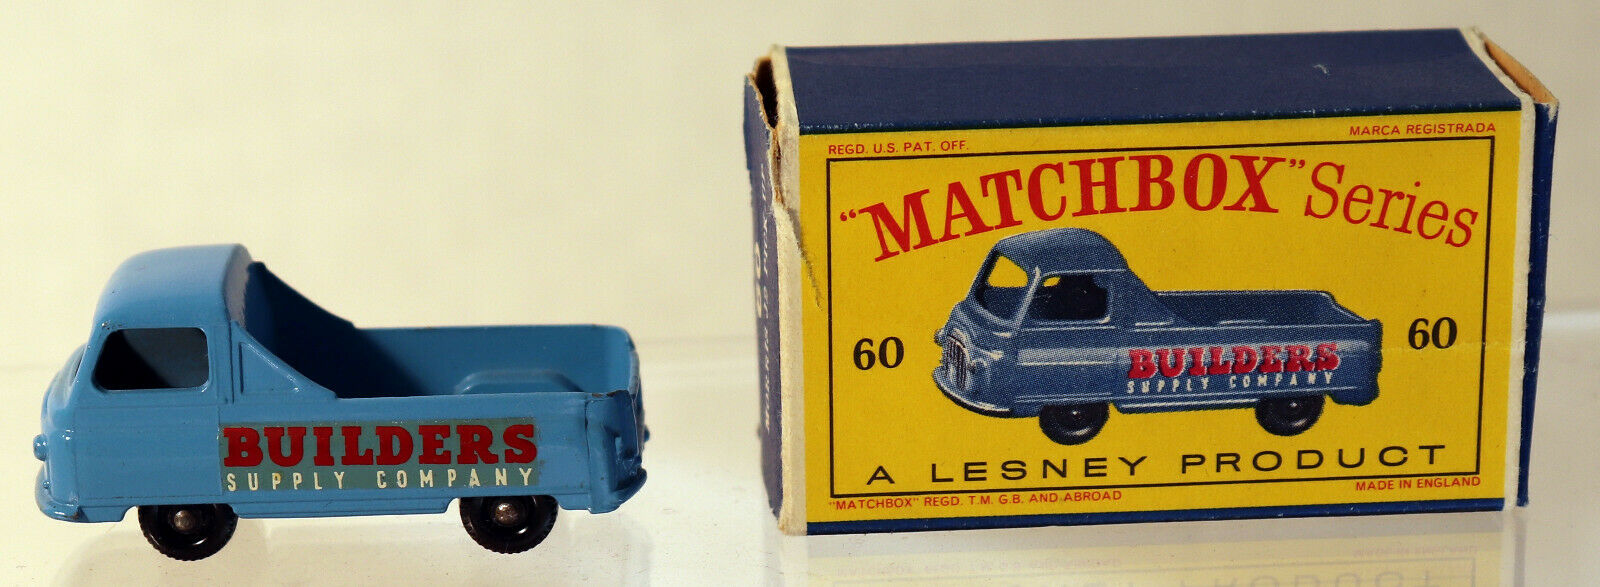 ETTD LESNEY MATCHBOX REGULAR WHEELS 60-1 Builders Supply Vitre Arrière fbpw